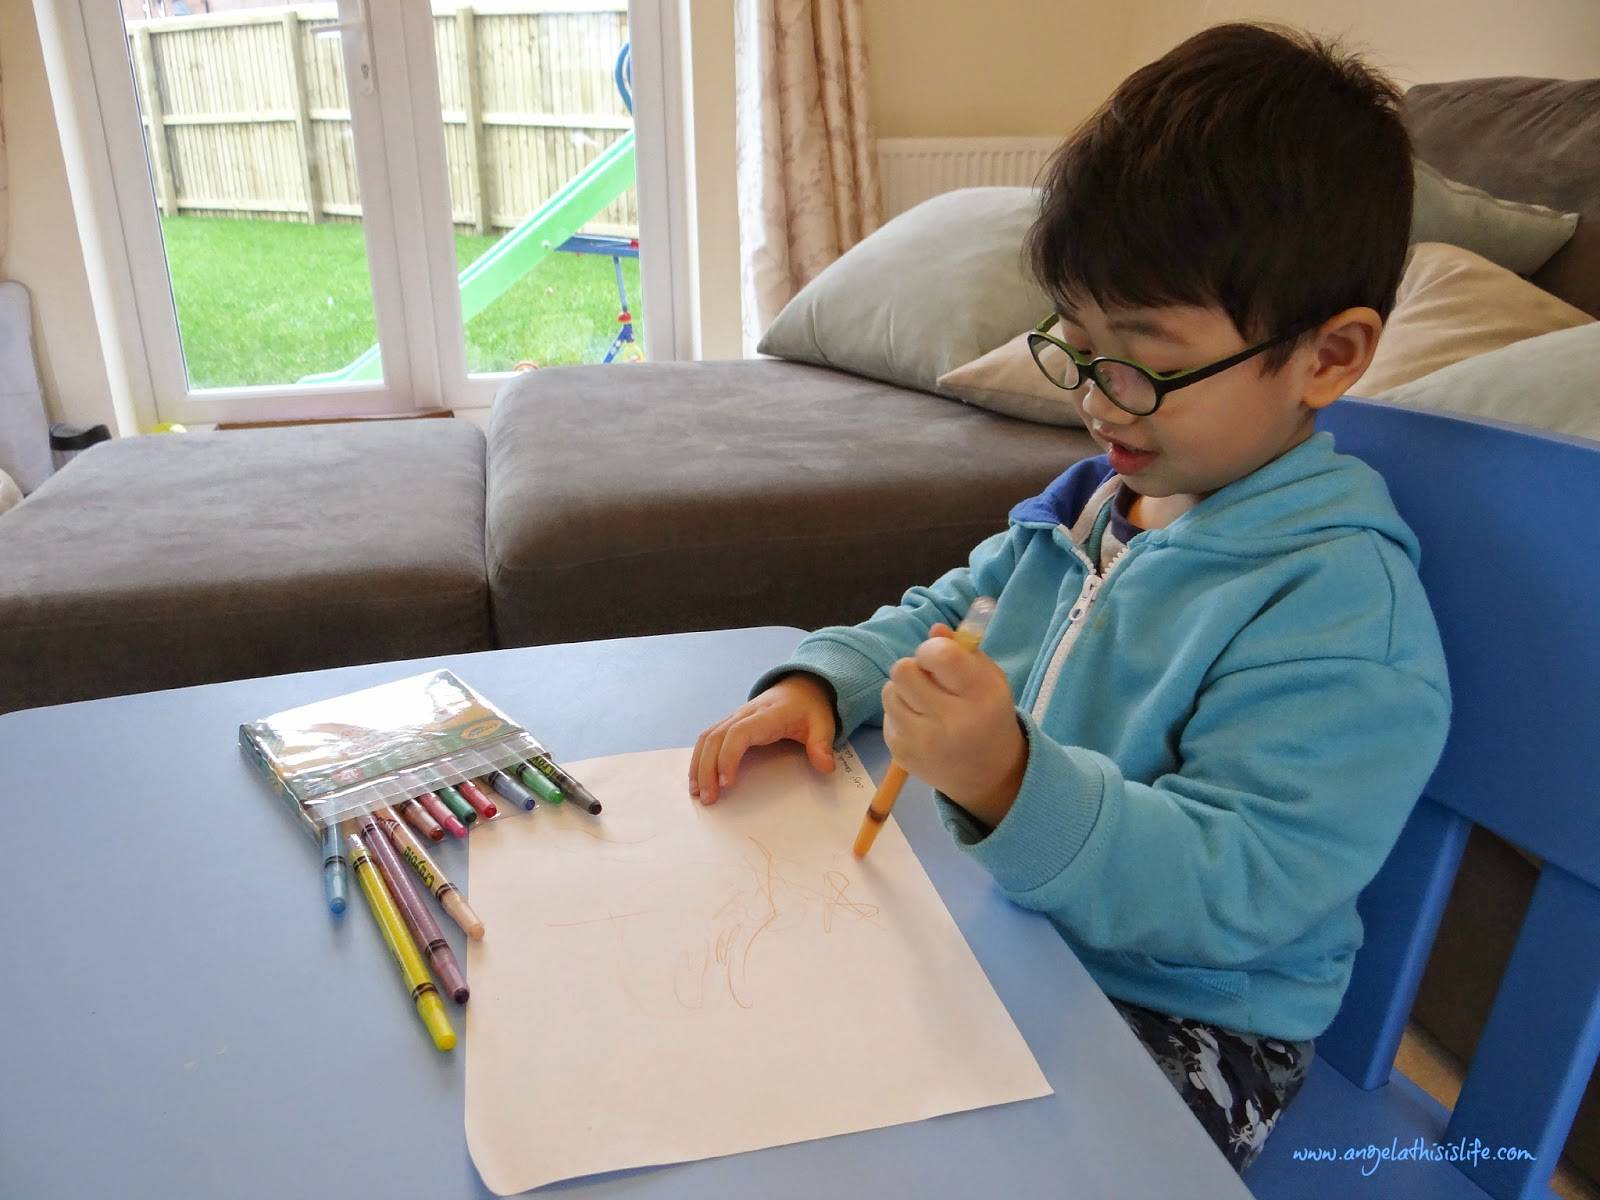 Crayola Doodles Survey, what children's doodles mean, children personality